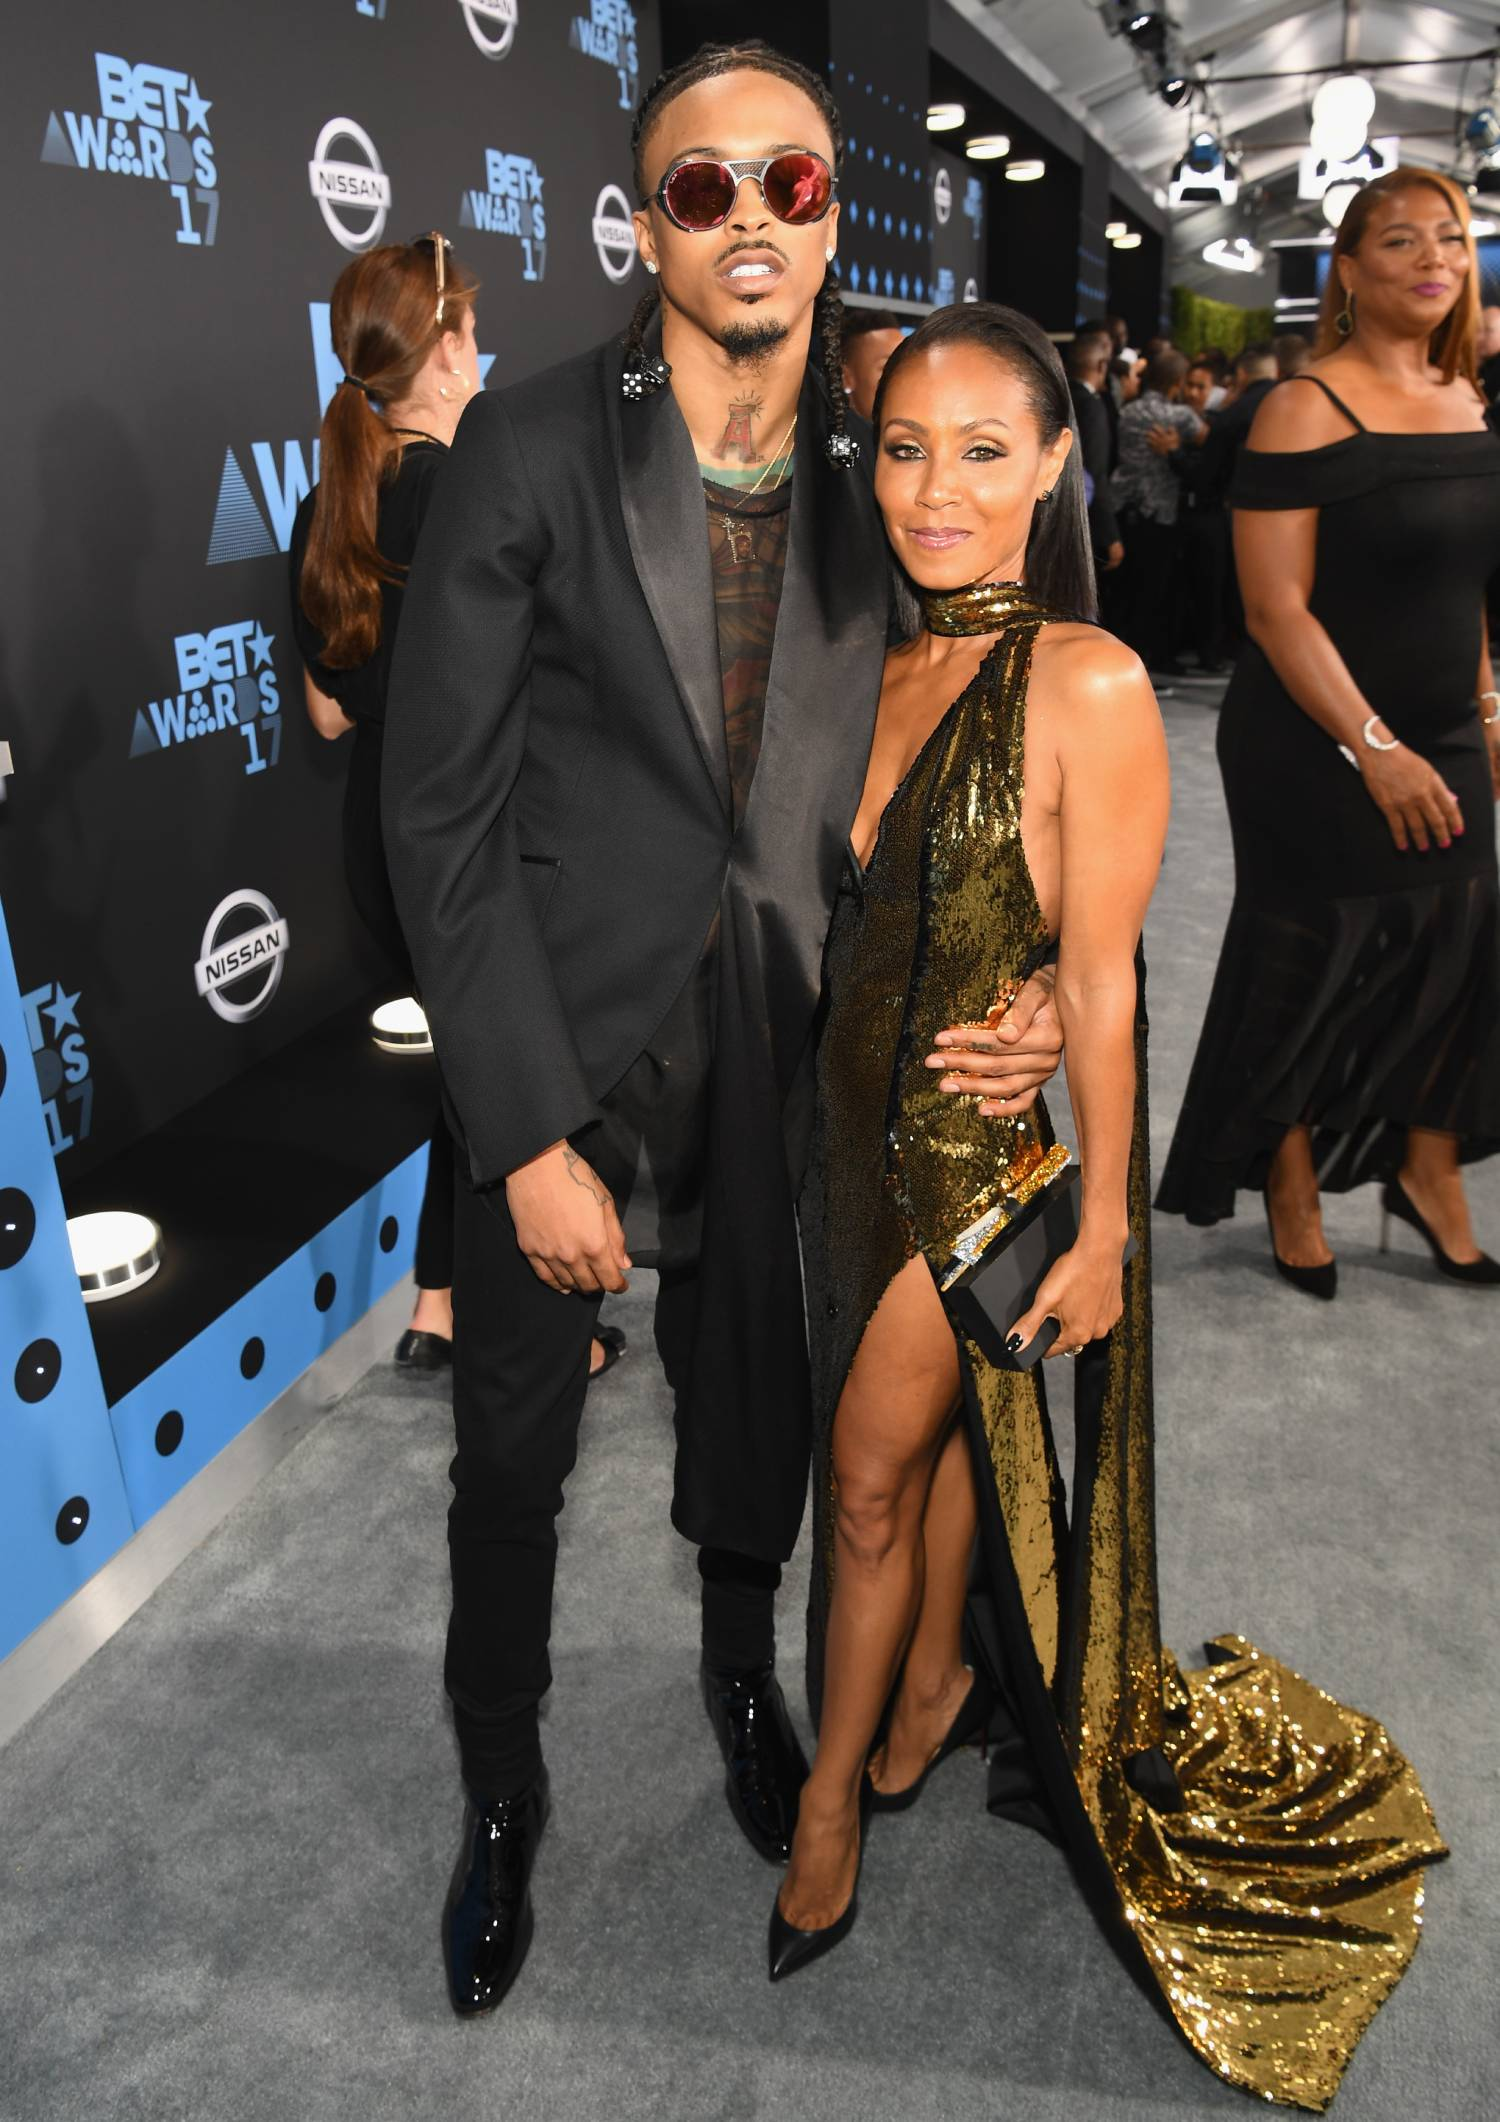 August Alsina (L) and Jada Pinkett Smith at the 2017 BET Awards at Staples Center on June 25, 2017 in Los Angeles, California.